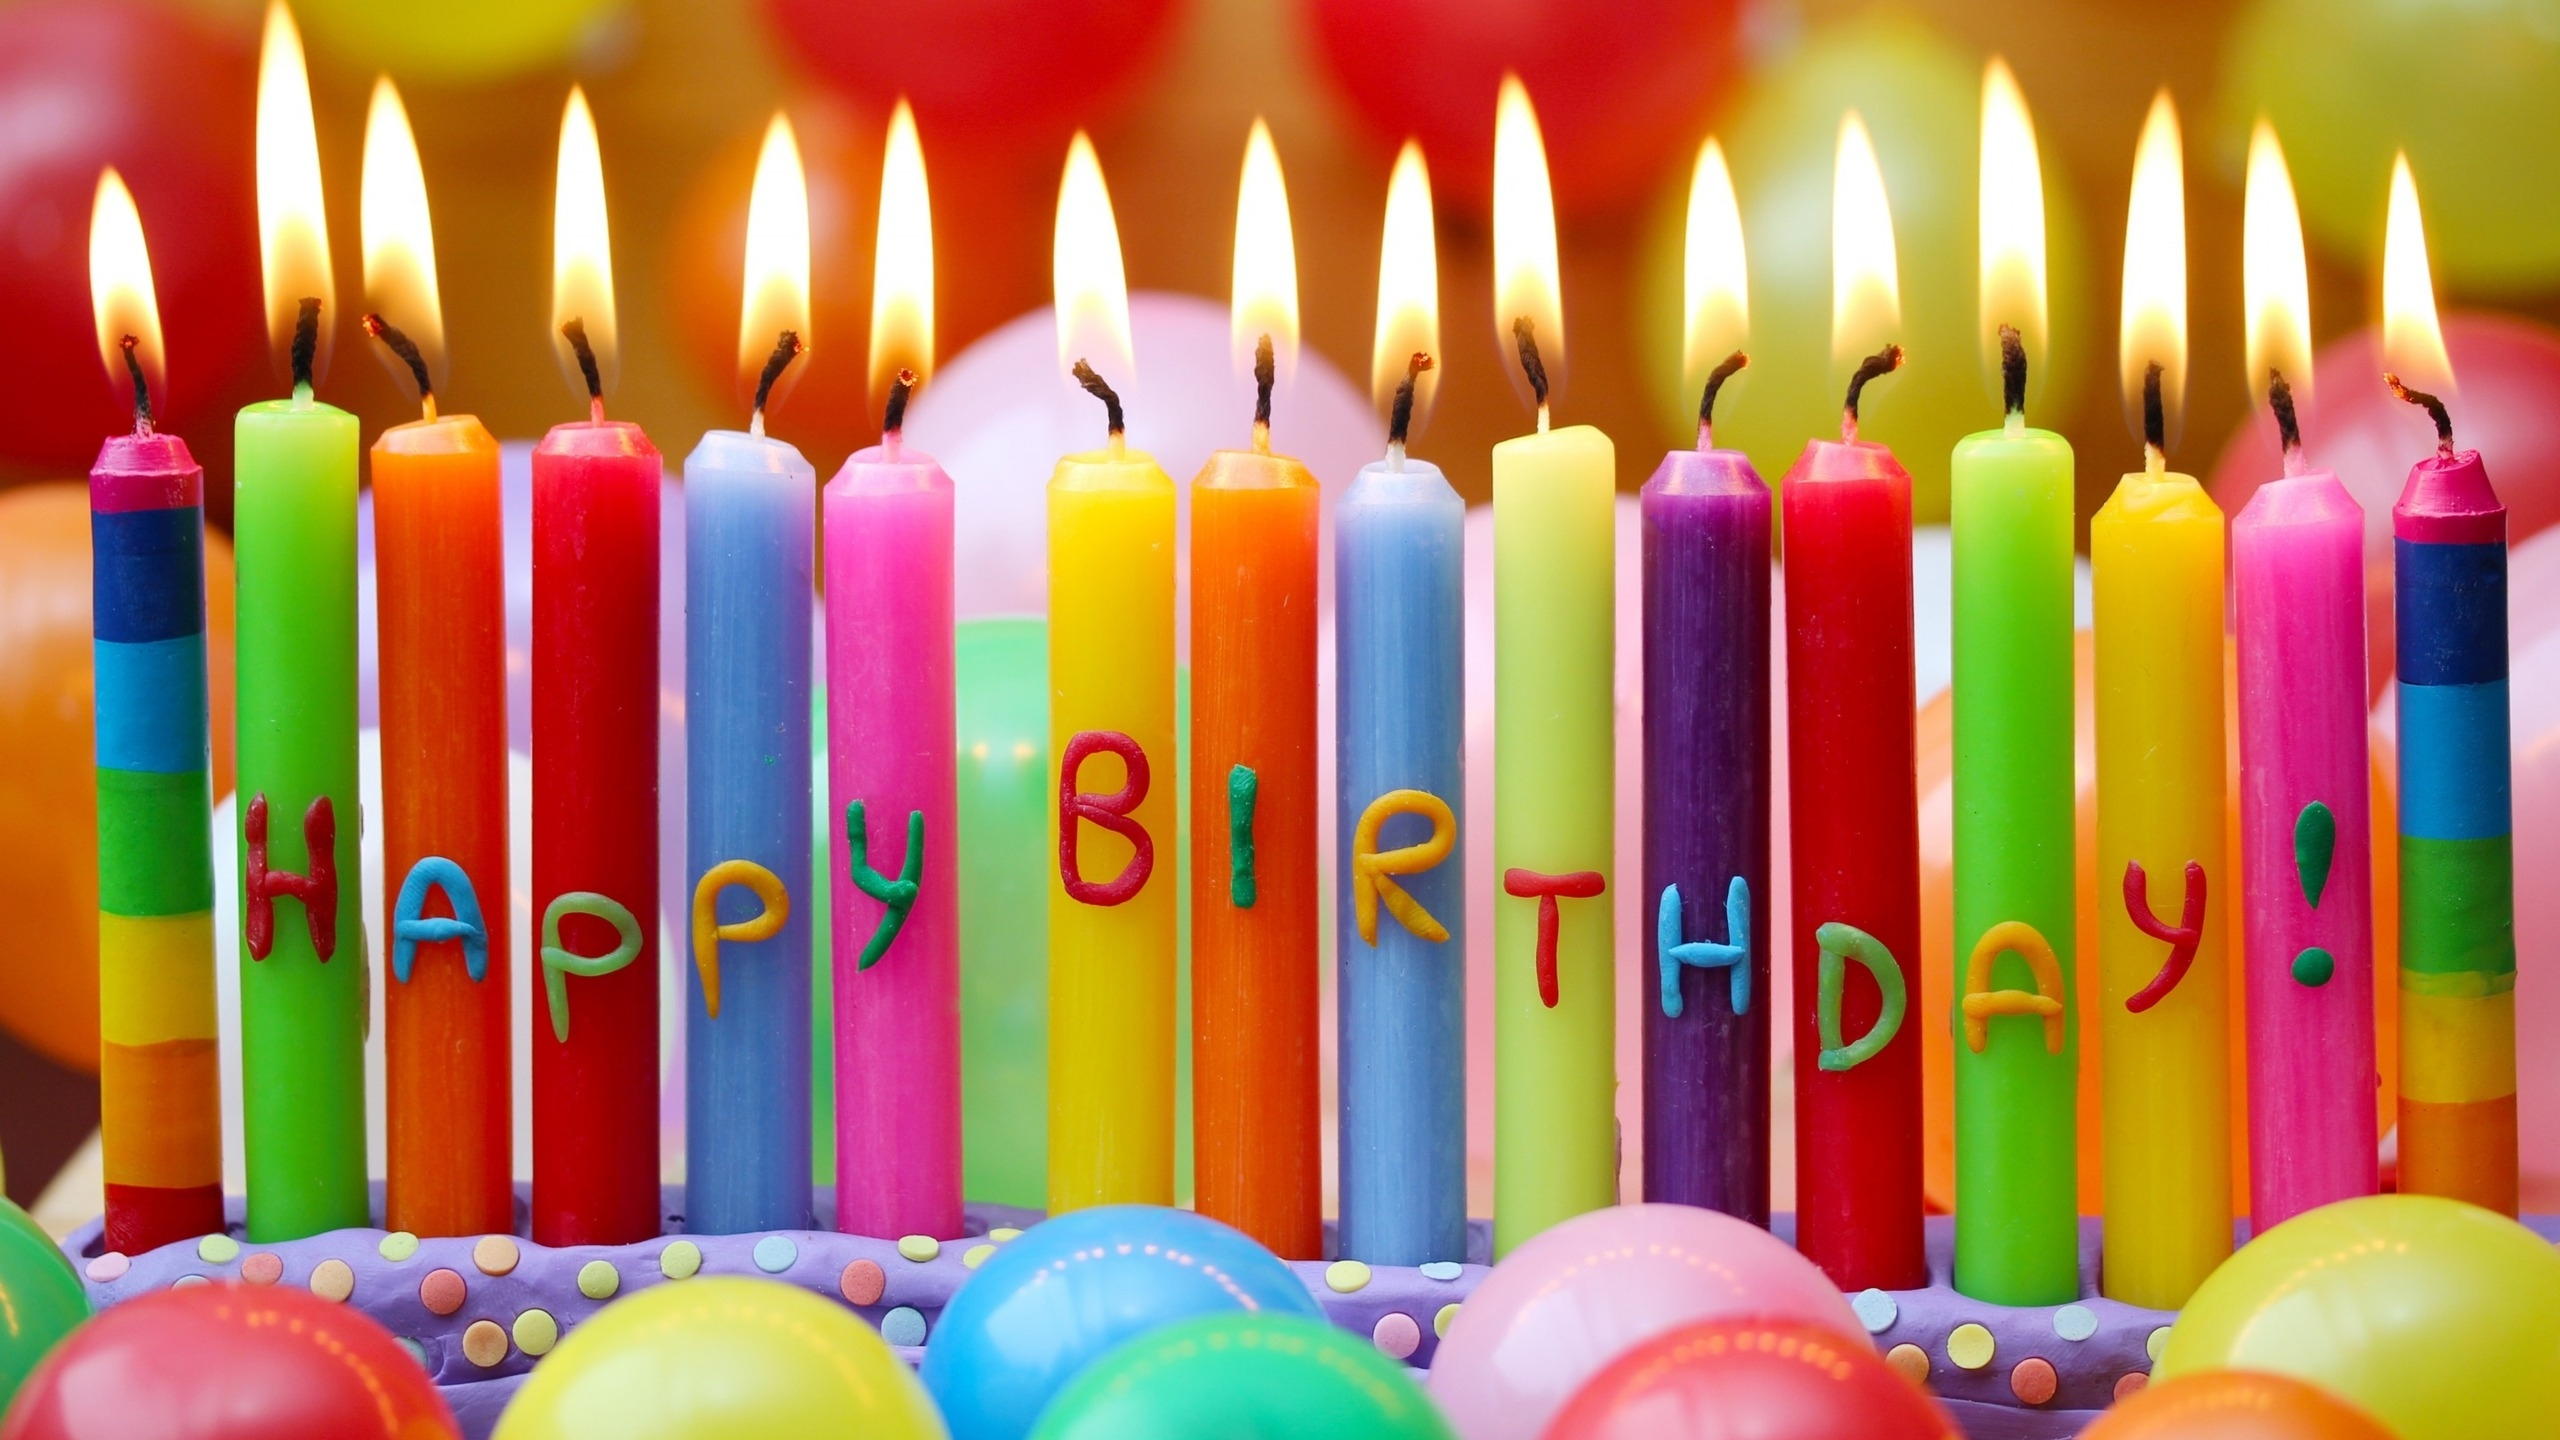 2560x1440 happy birthday candles youtube channel cover